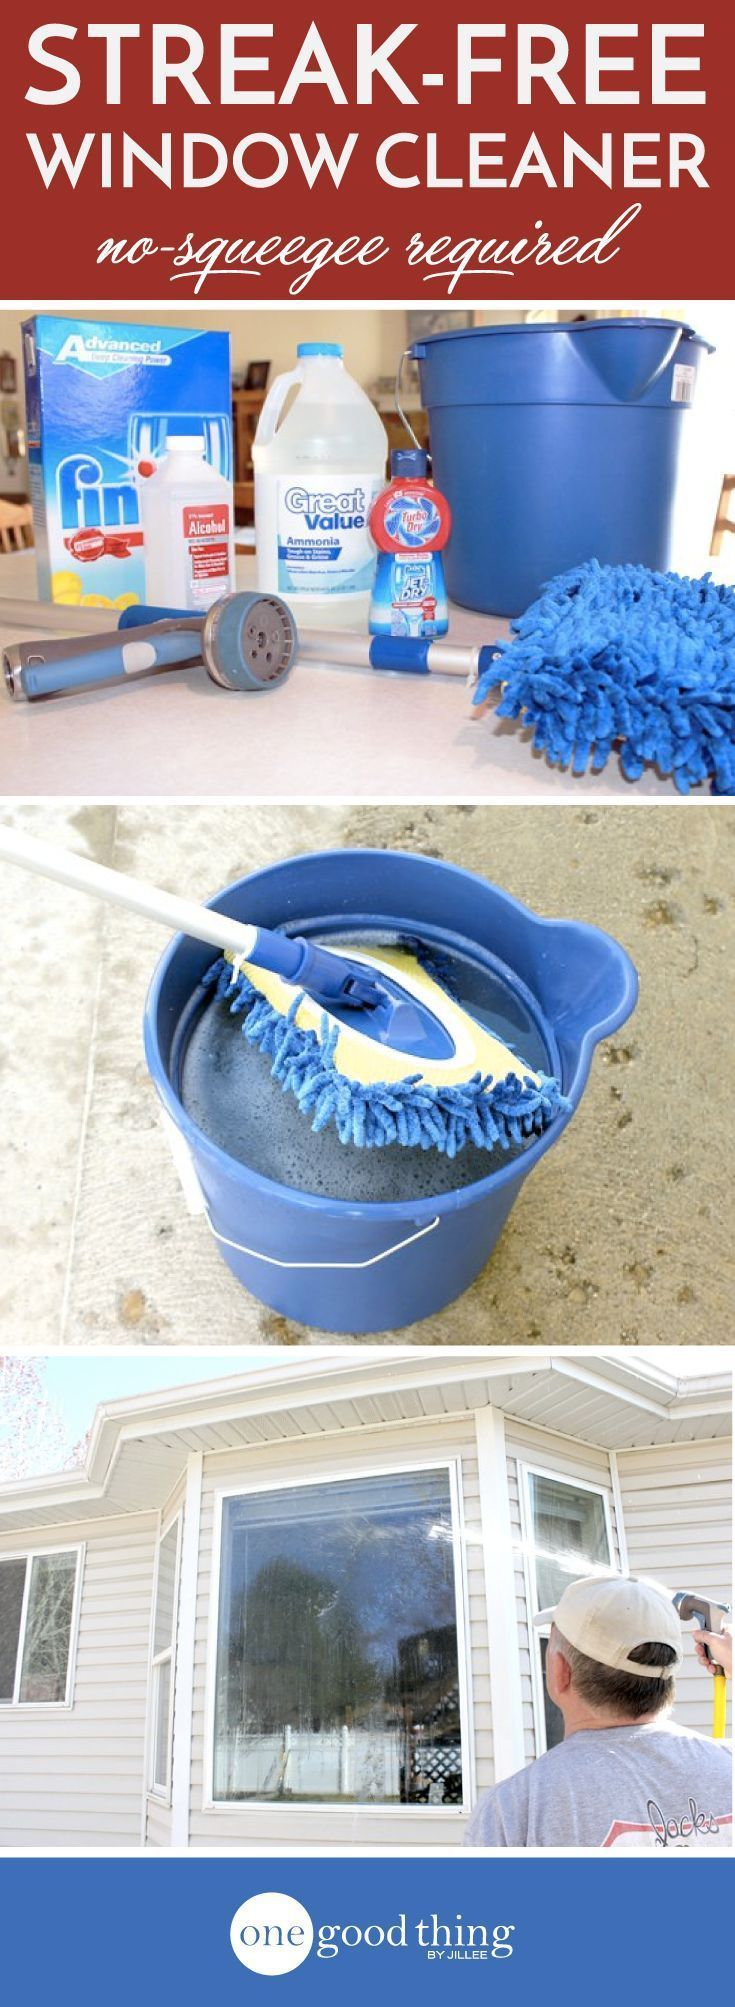 Best thing to clean windows with - Clean All The Windows On Your House To A Streak